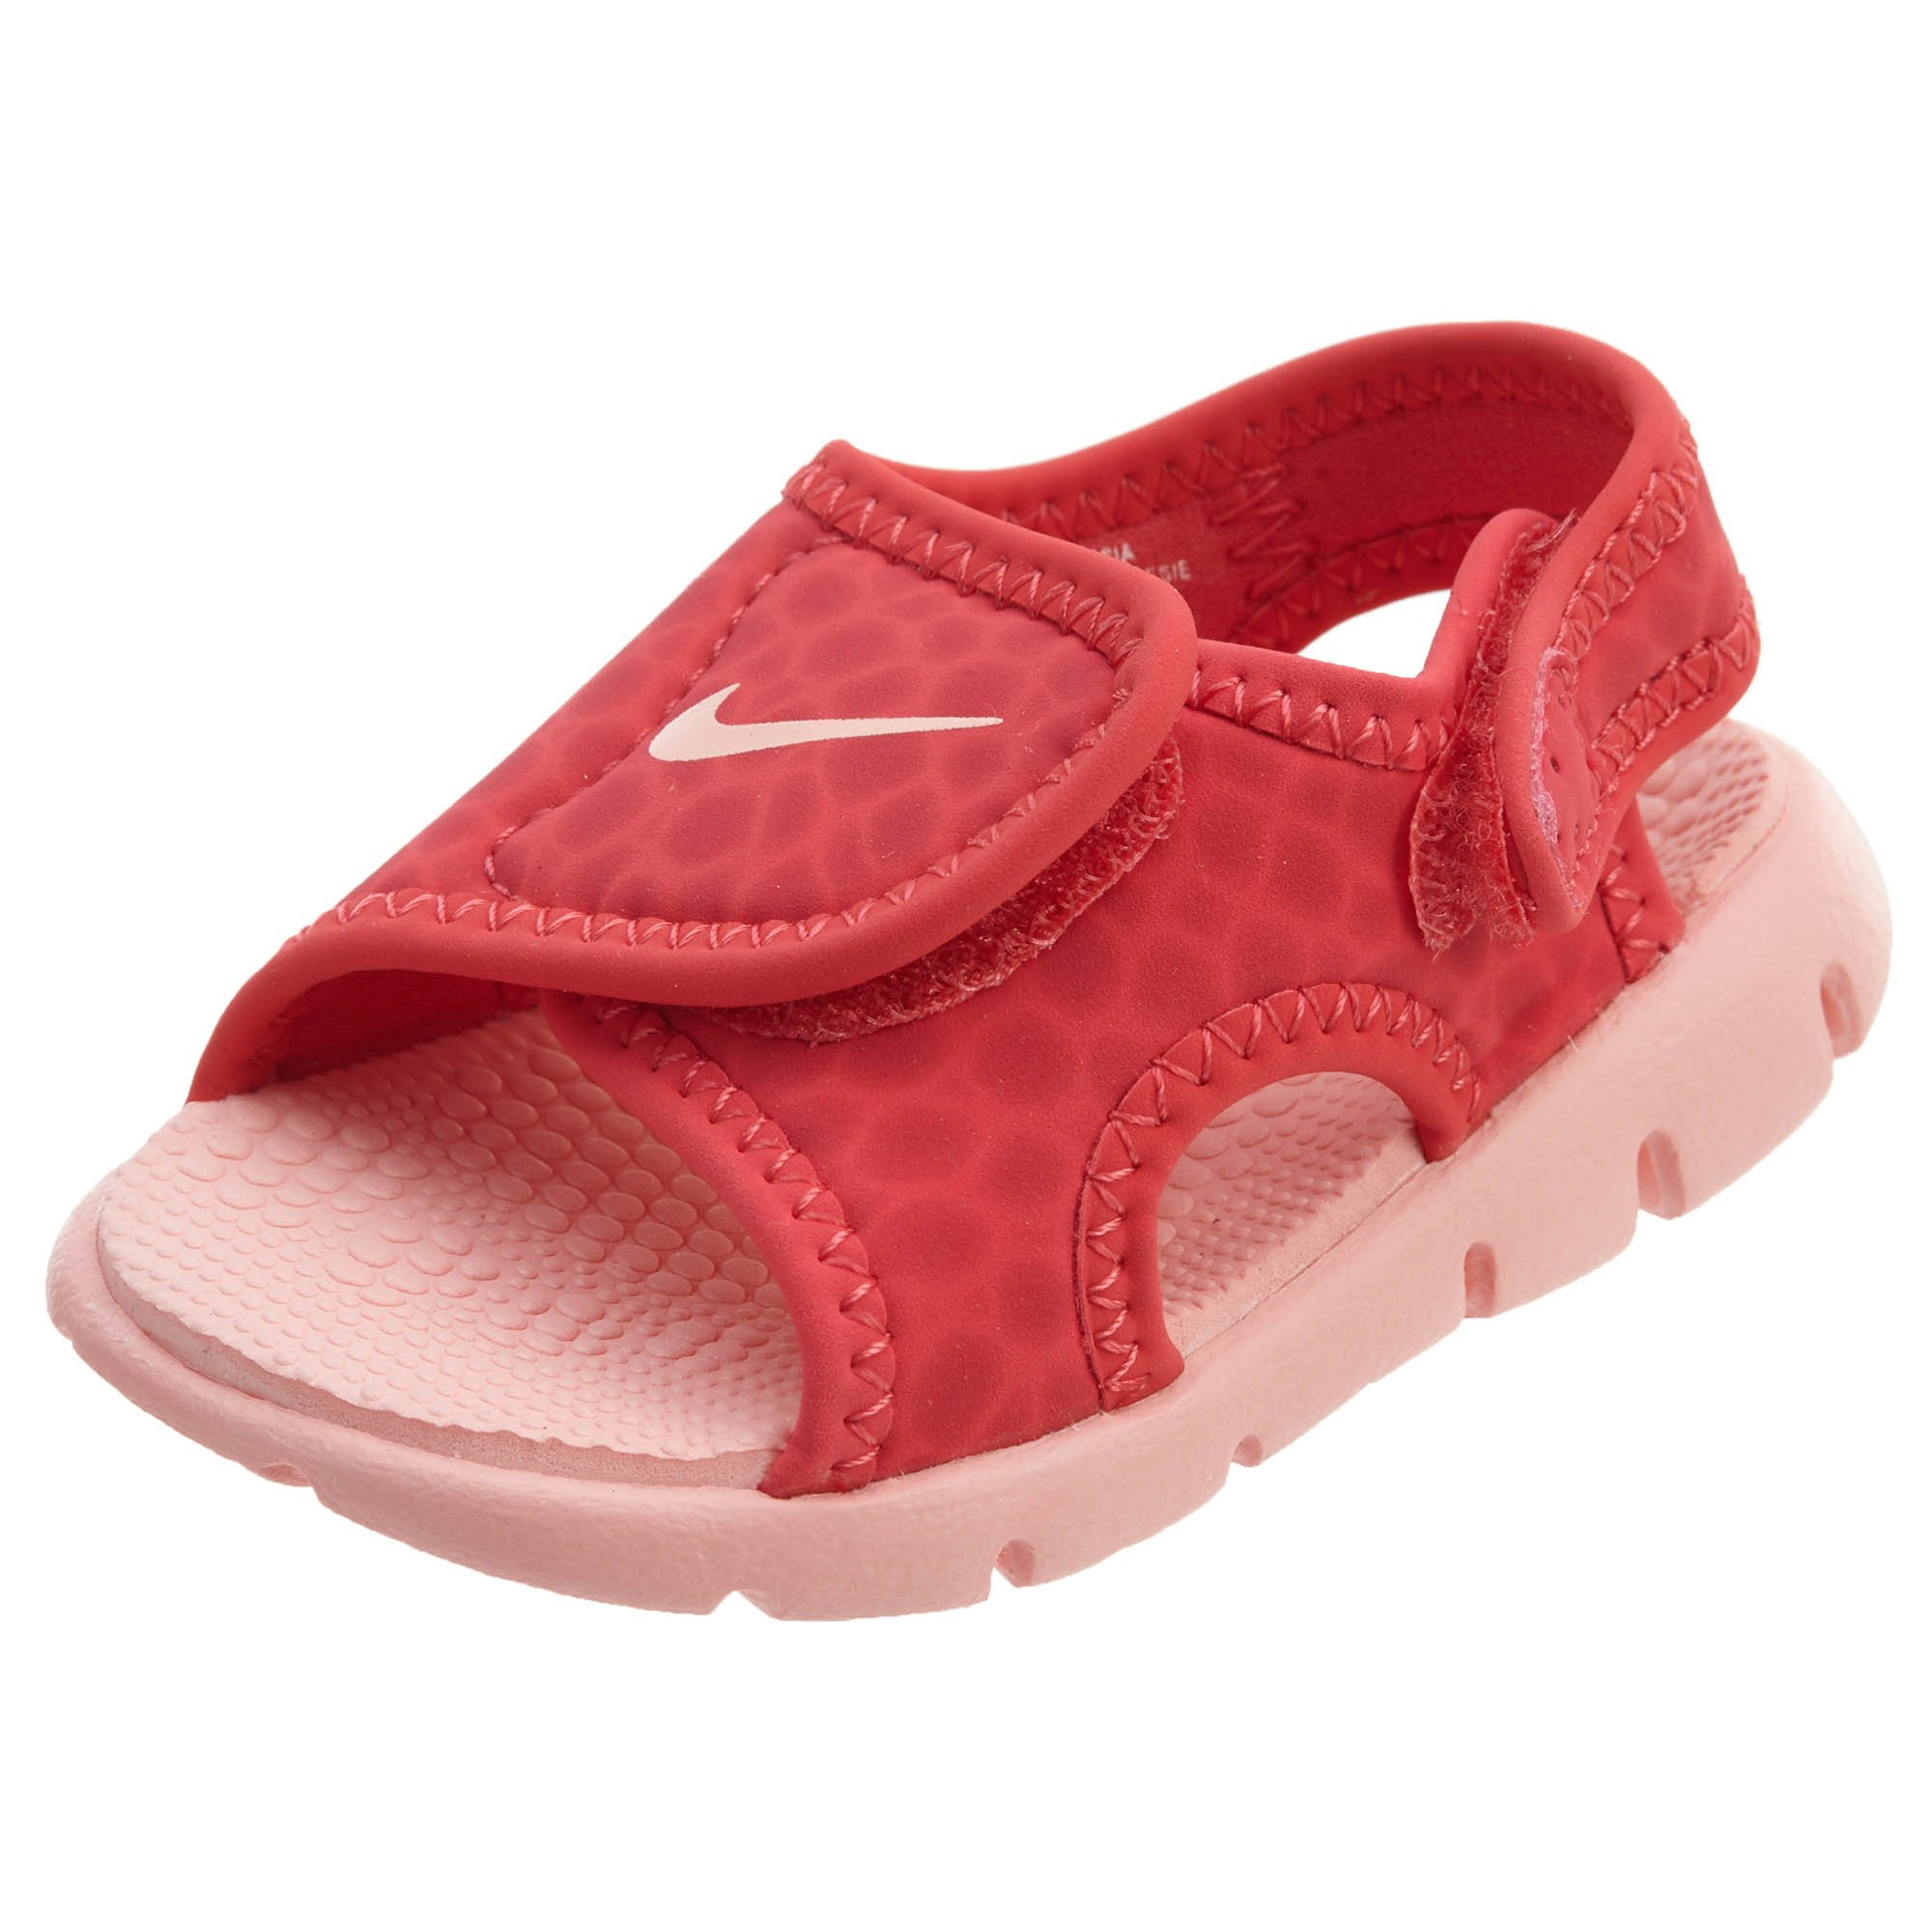 competitive price b97eb 1d42b Galleon - NIKE Sunray Adjust 4 (TD) Baby-Boys Slippers 386521-6085C -  Tropical PinkBleached Coral